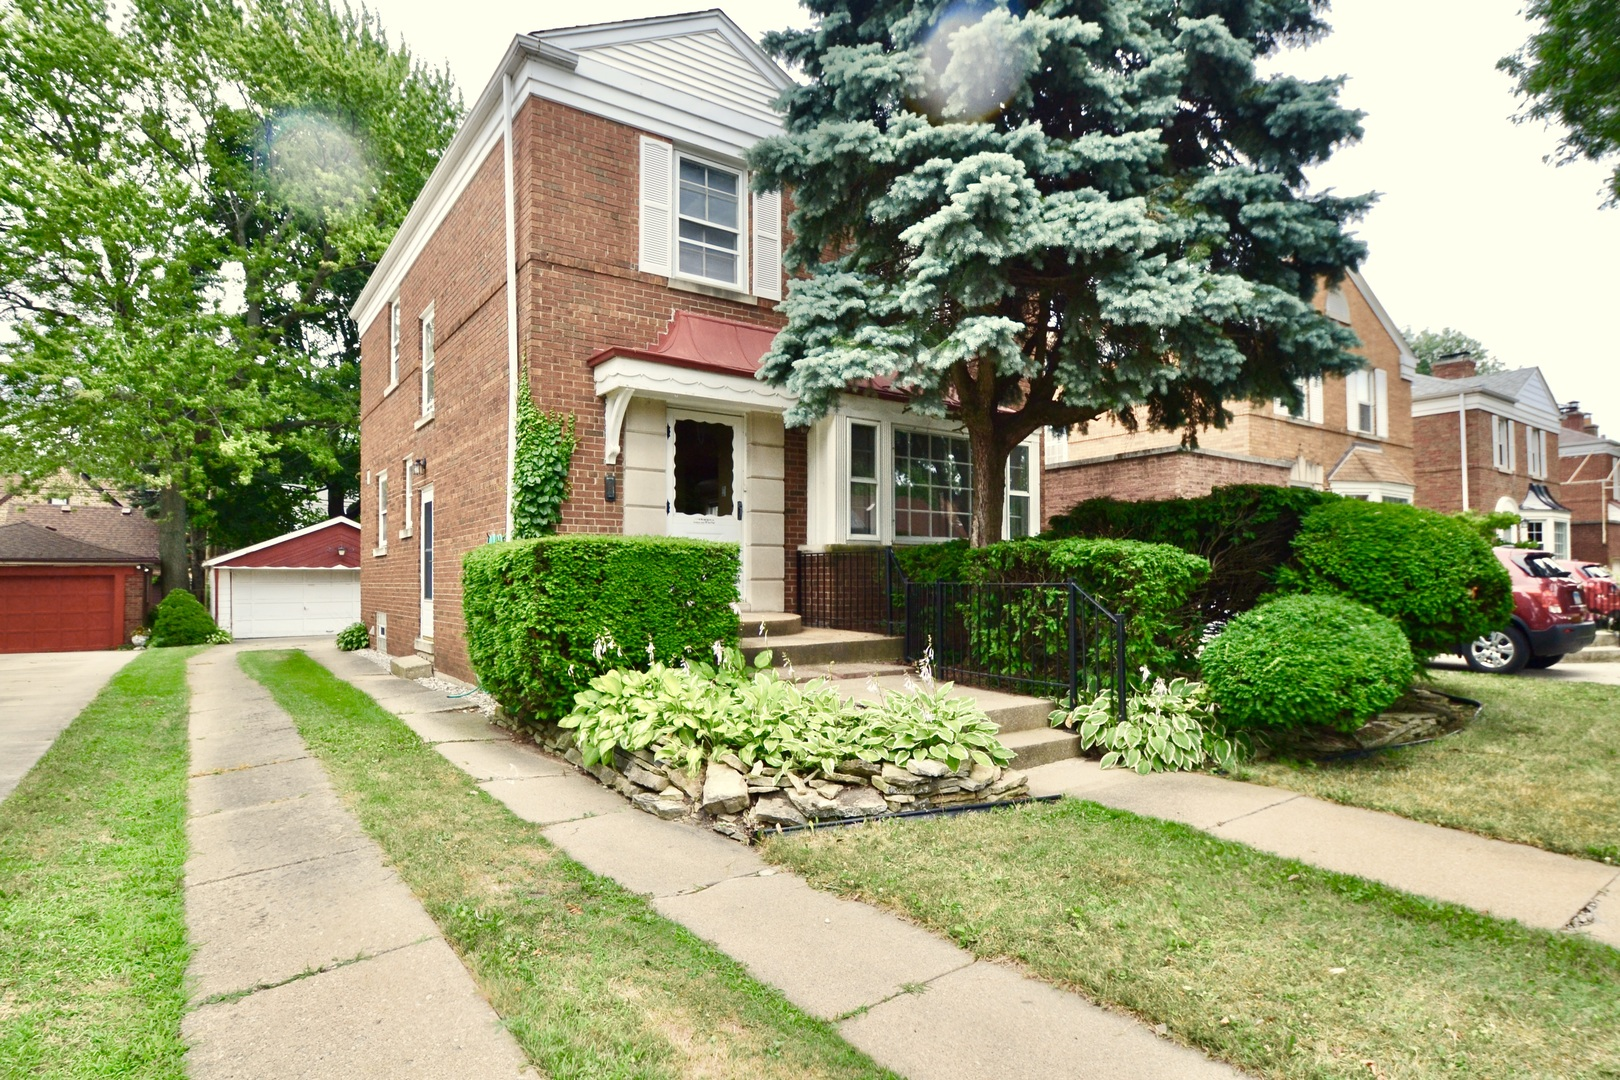 Photo of 9611 Oakley Chicago IL 60643